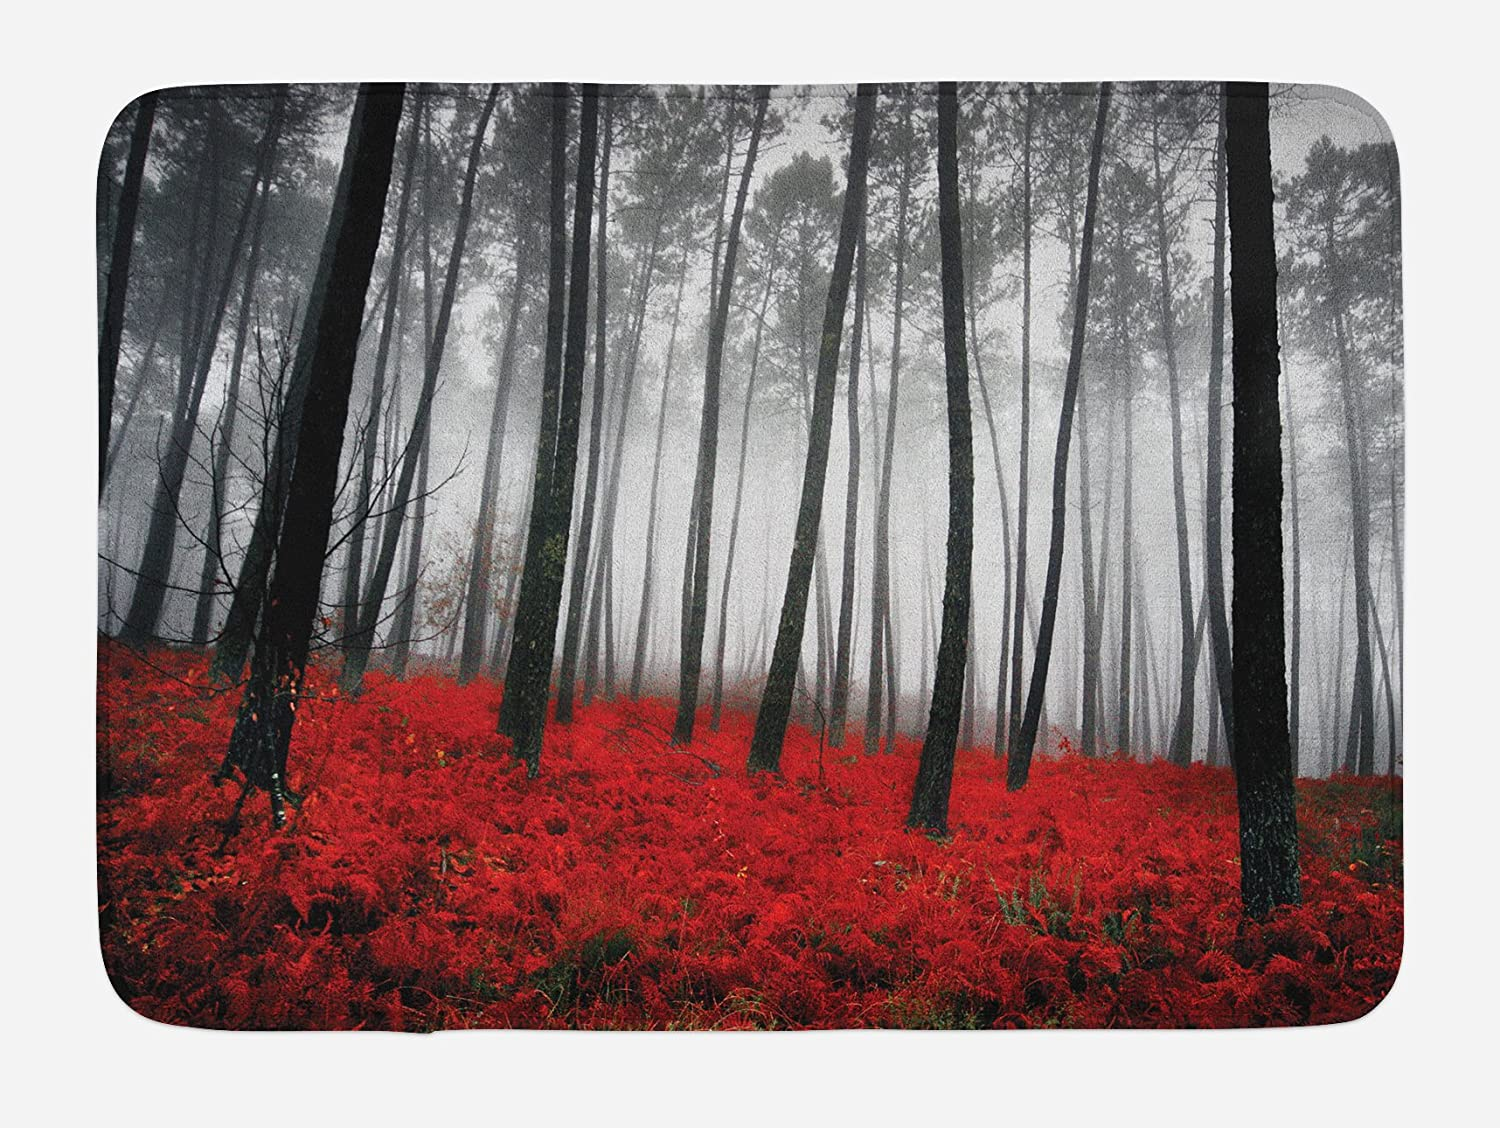 Ambesonne Forest Bath Mat, Mystical Fantasy Woodland Under Heavy Fog Tall Trees Bushes Contrast Colors, Plush Bathroom Decor Mat with Non Slip Backing, 29.5